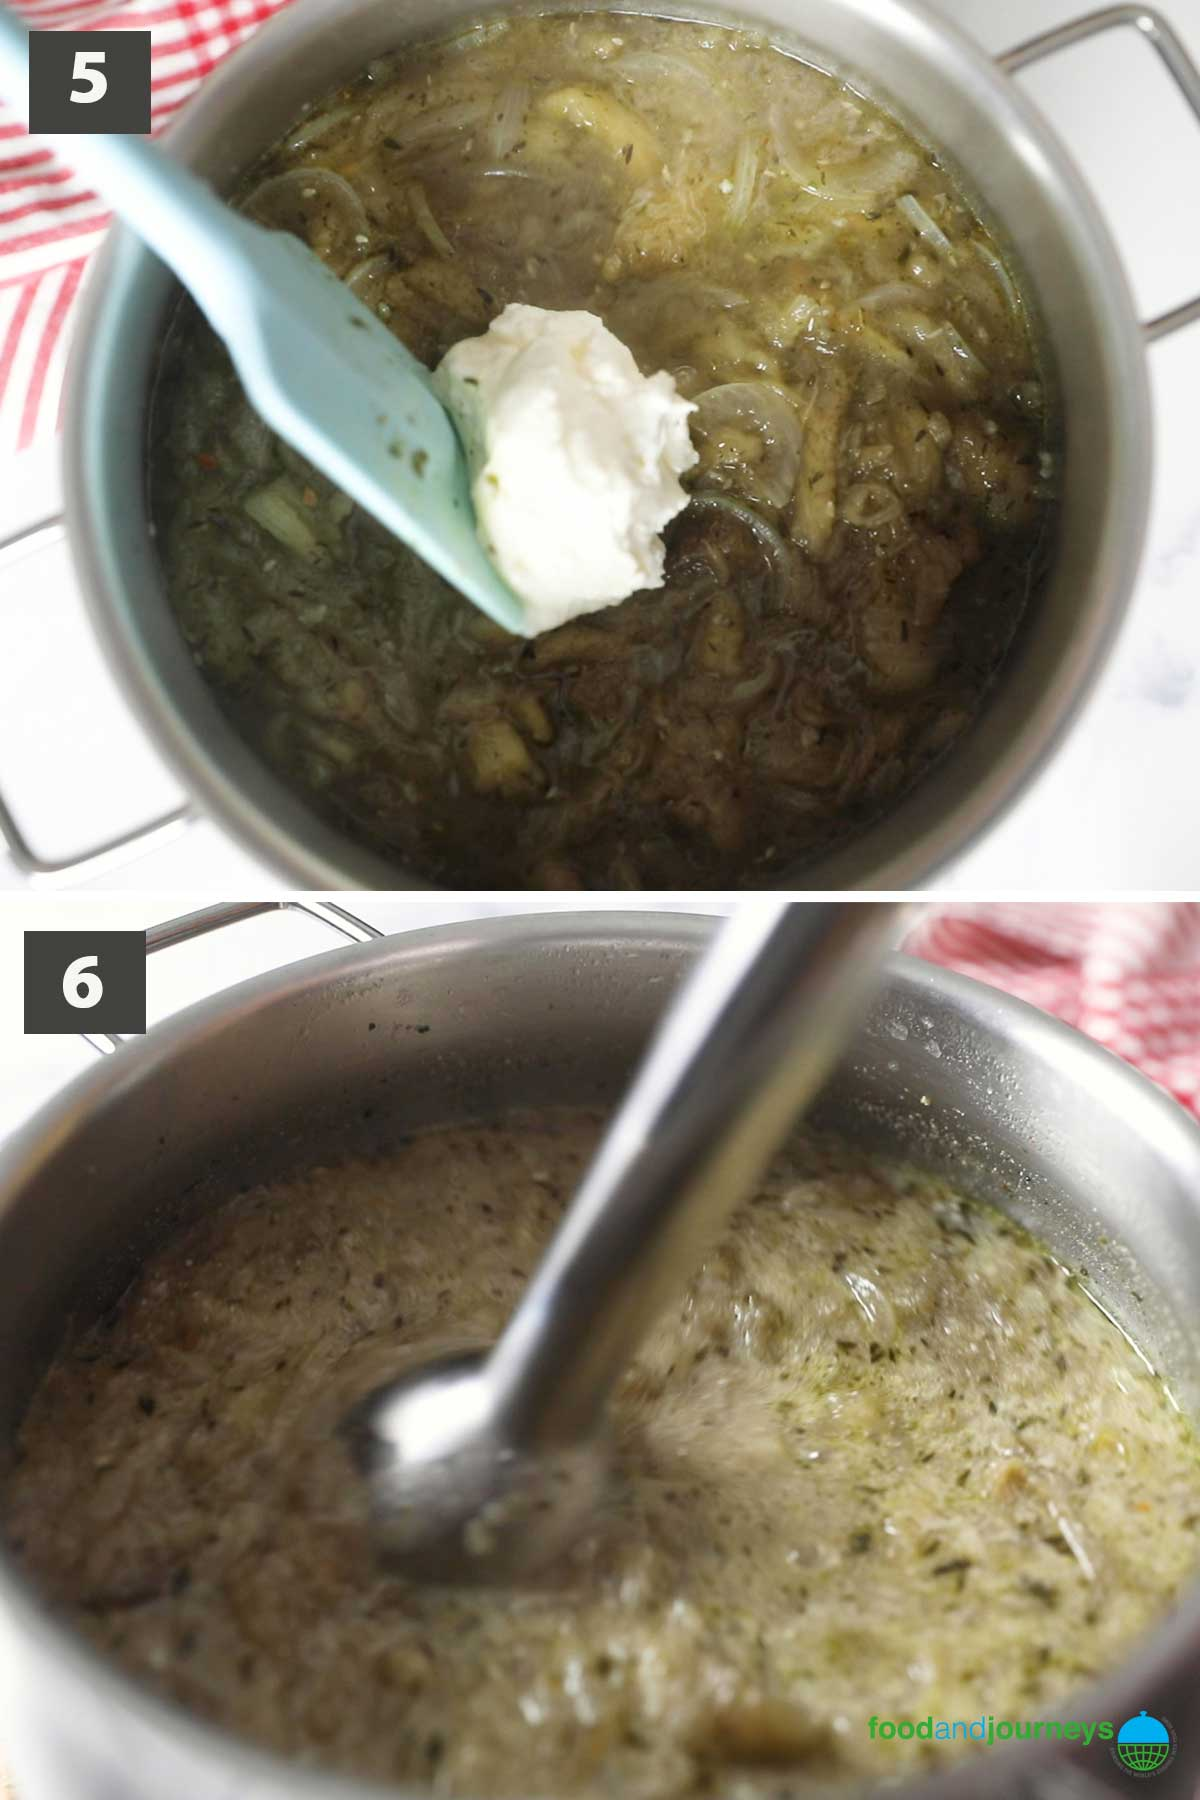 Second part of a collage of images showing the step by step process on how to make Eggplant Soup.